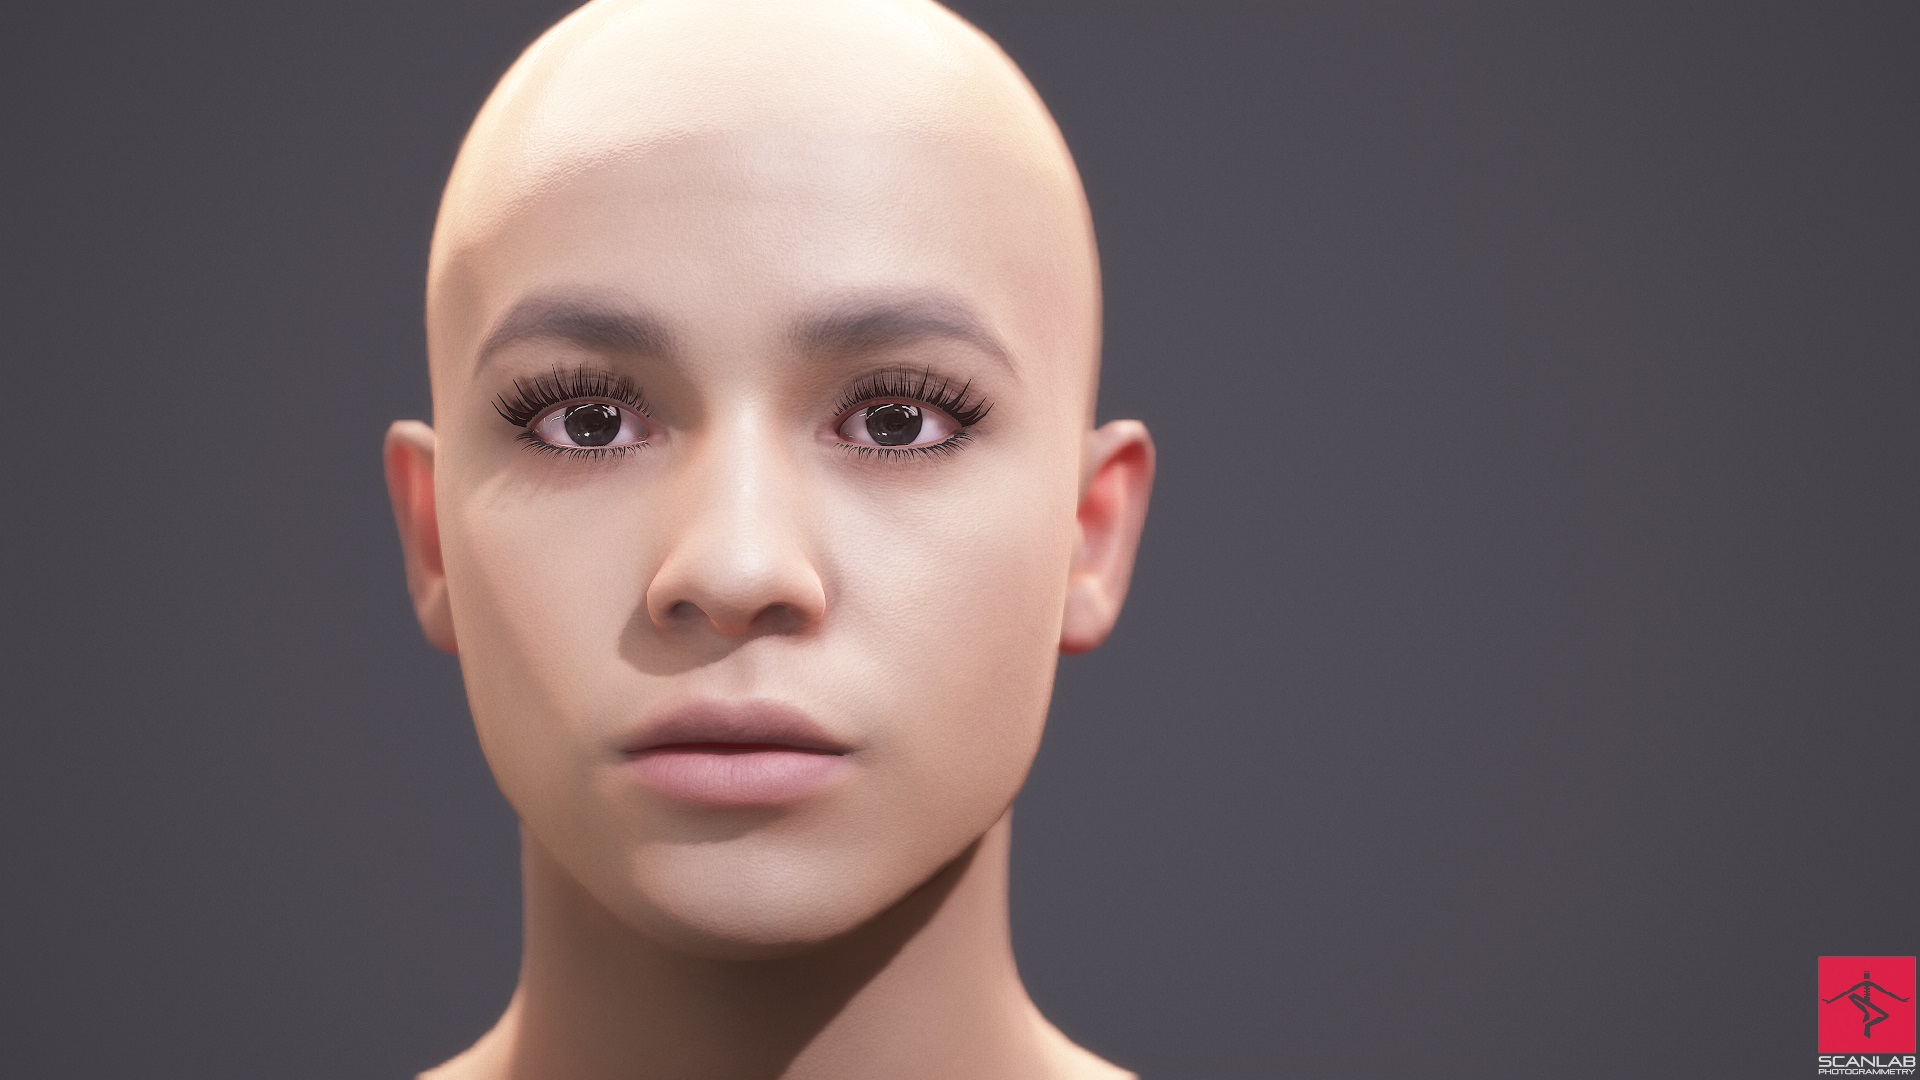 April's 3D Scan for Facial Animation